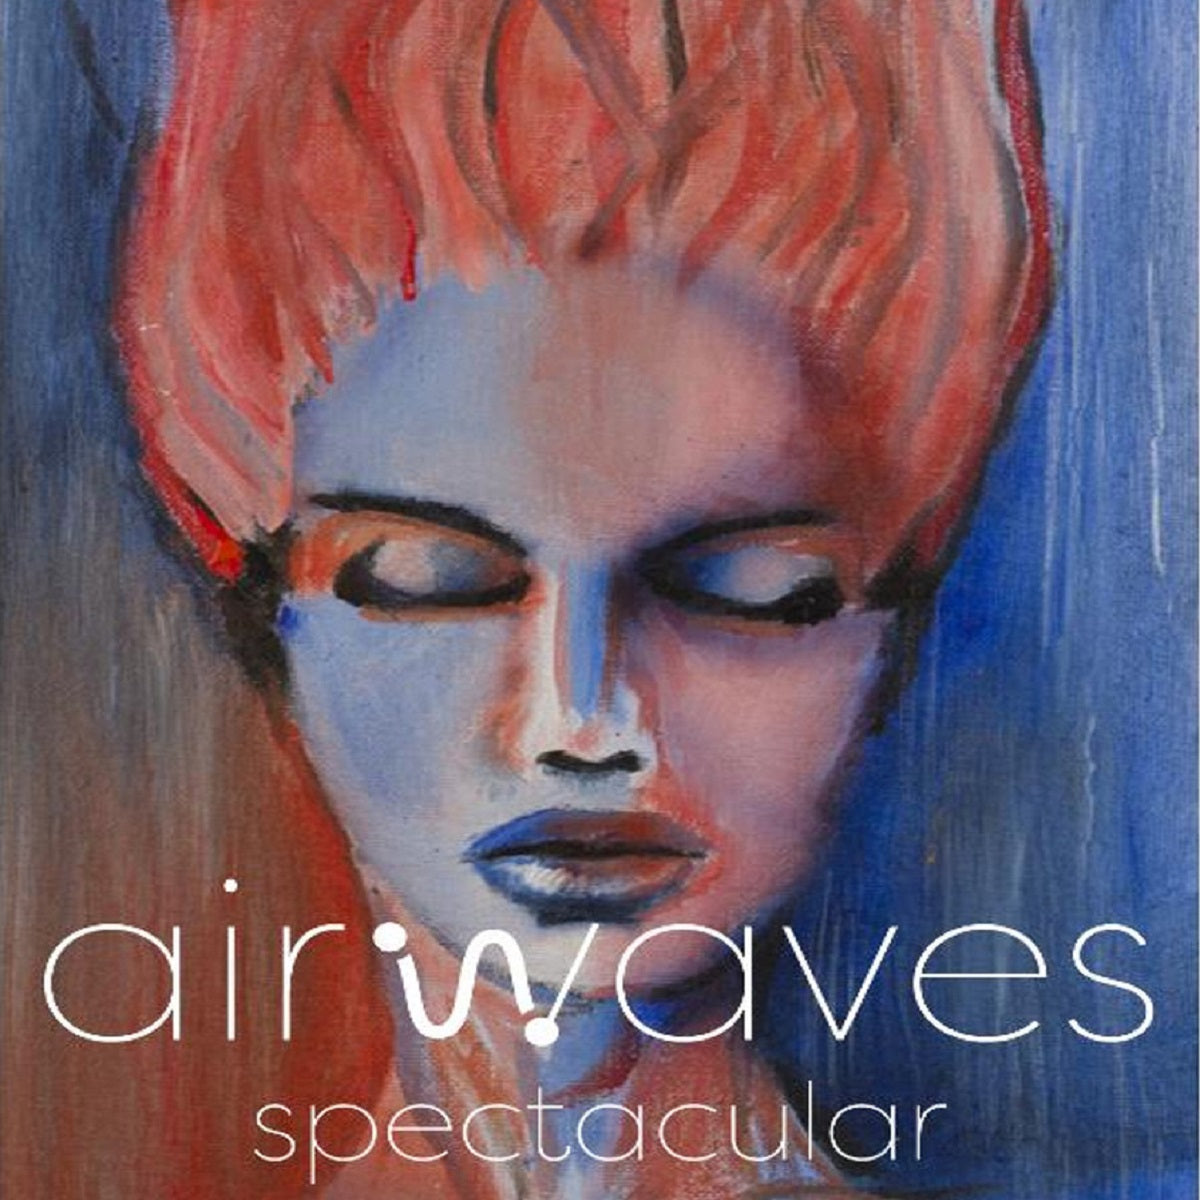 Airwaves Spectacular – 'Airwaves Spectacular'